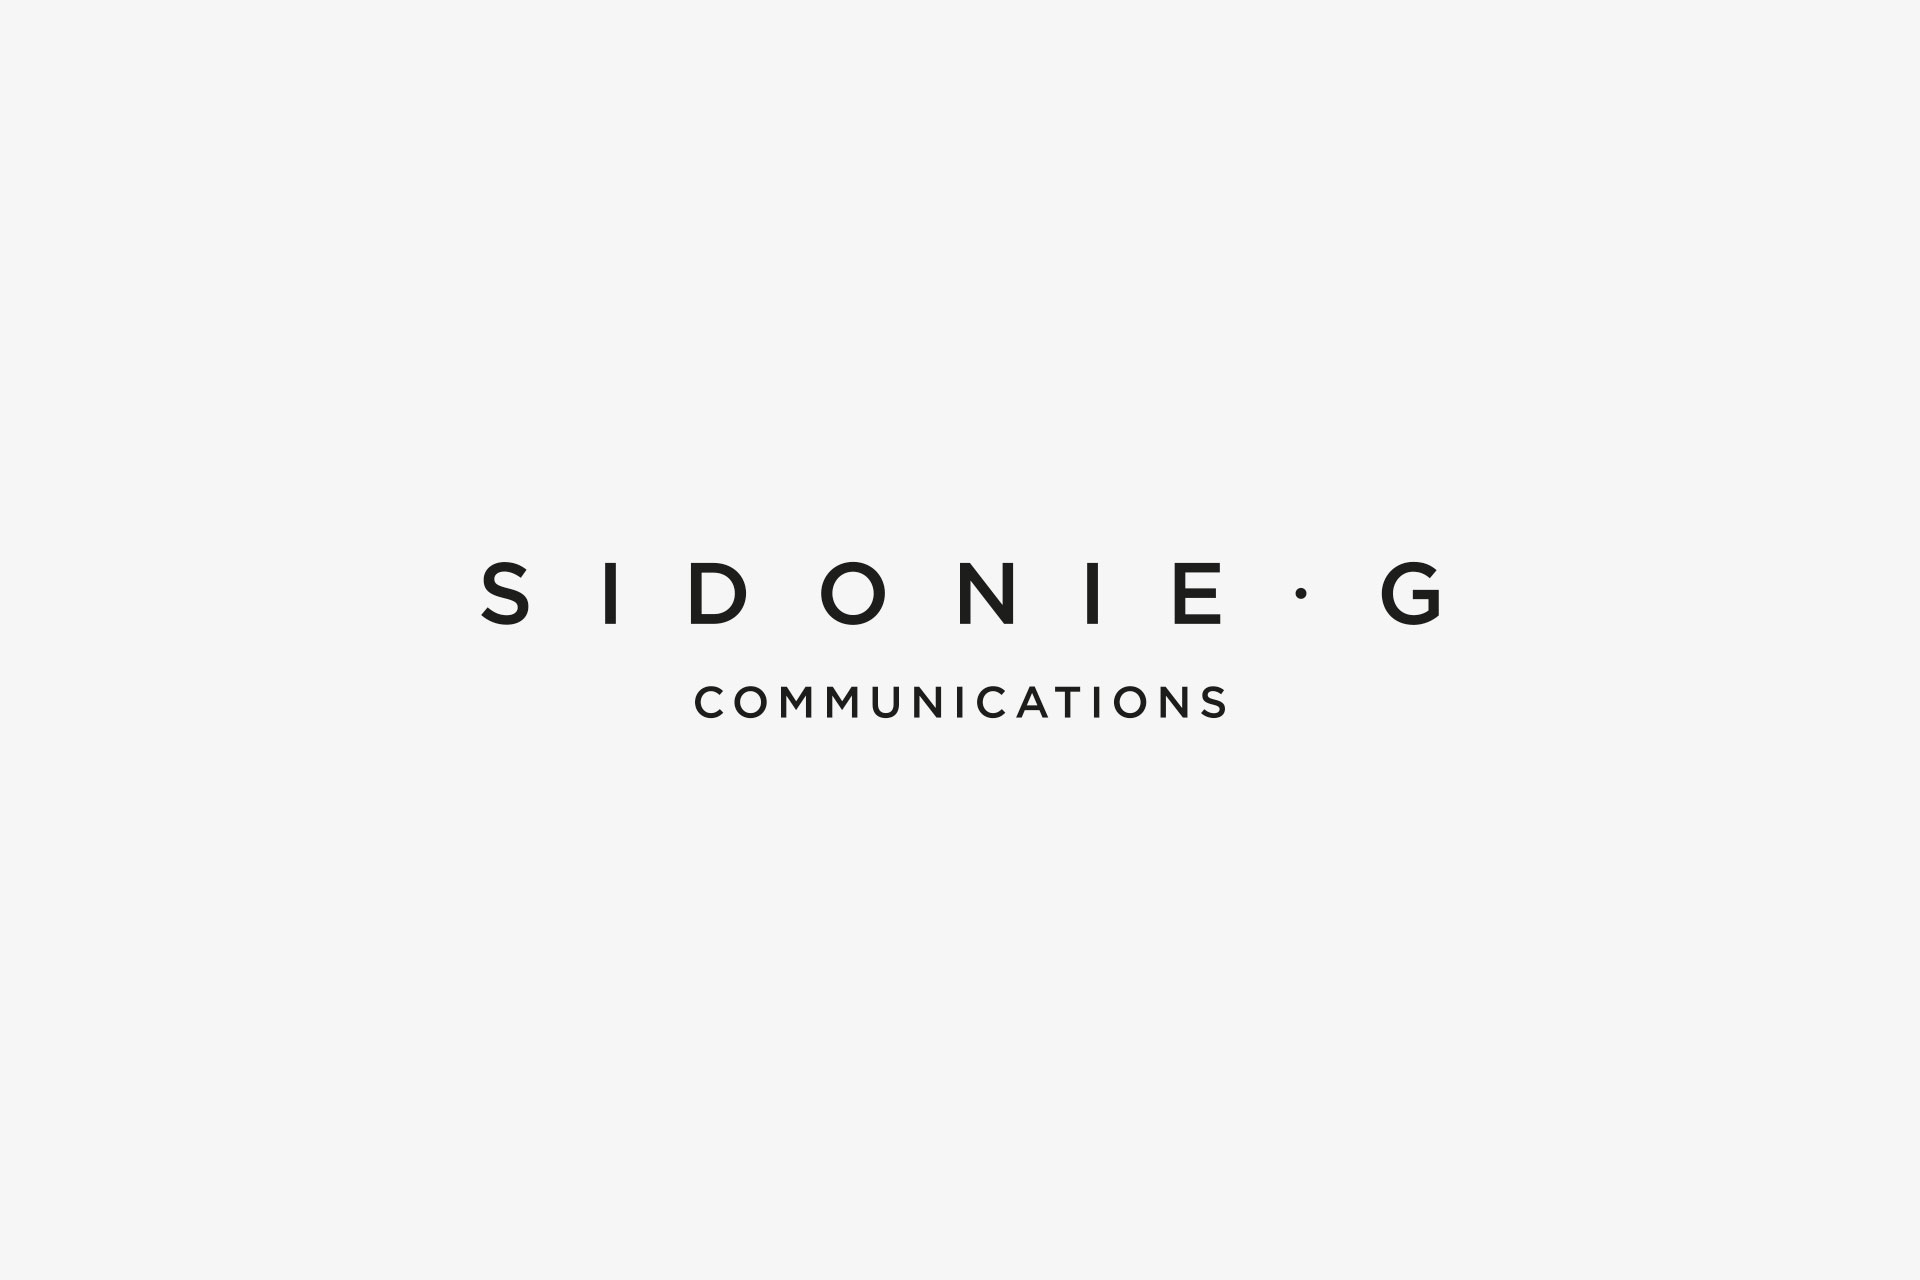 Sidonie G Communications 2